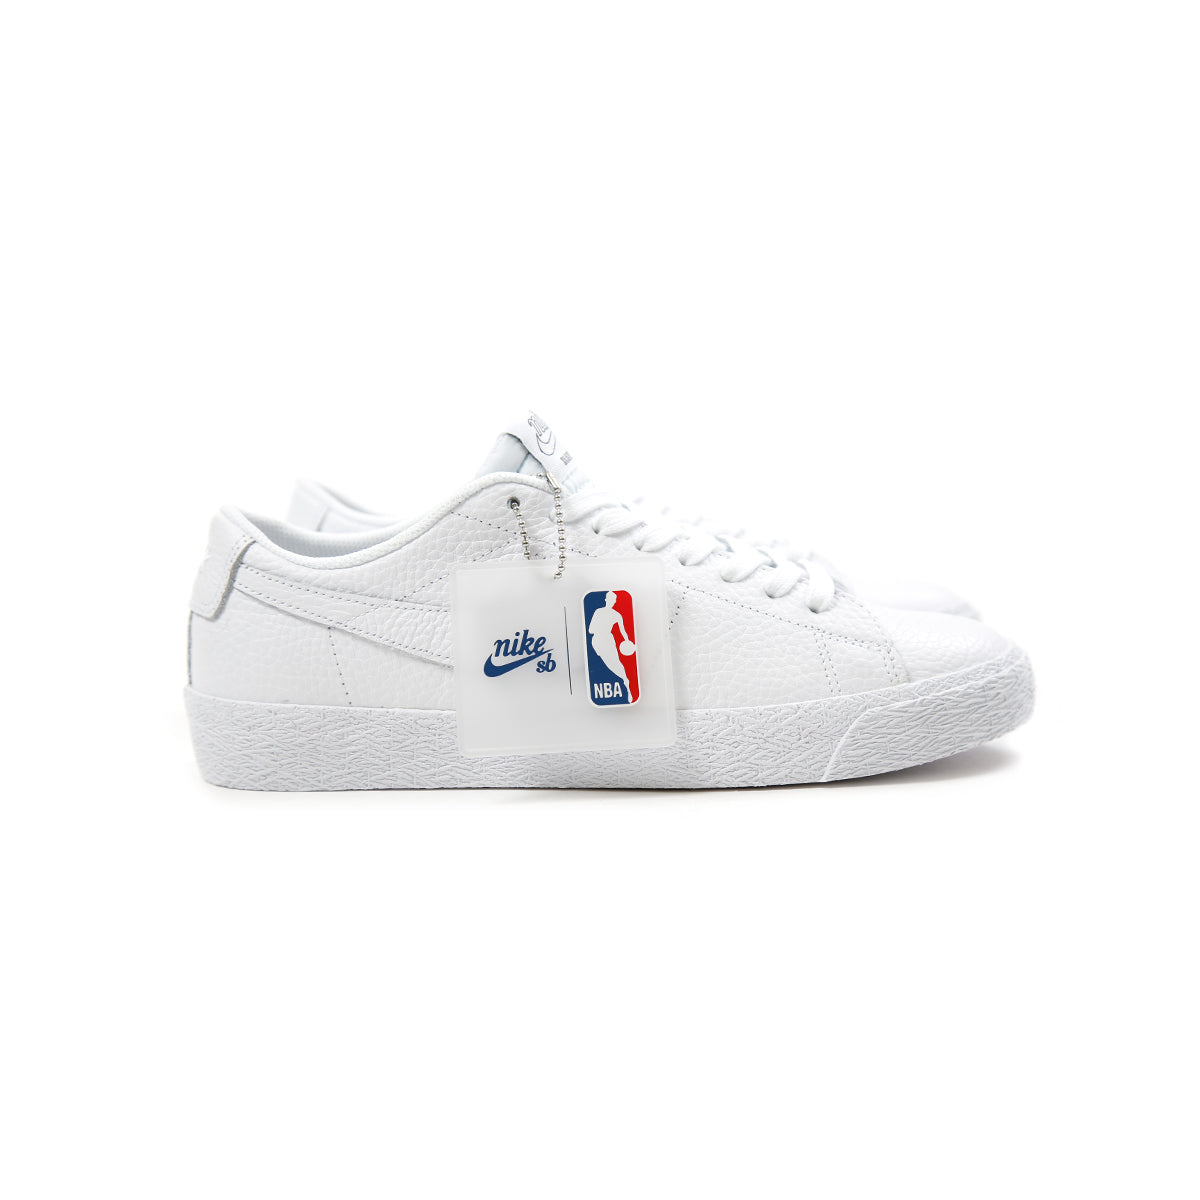 39538e7e02f2 ... discount nike sb zoom blazer low nba white white rush blue university  red 00dd7 406c8